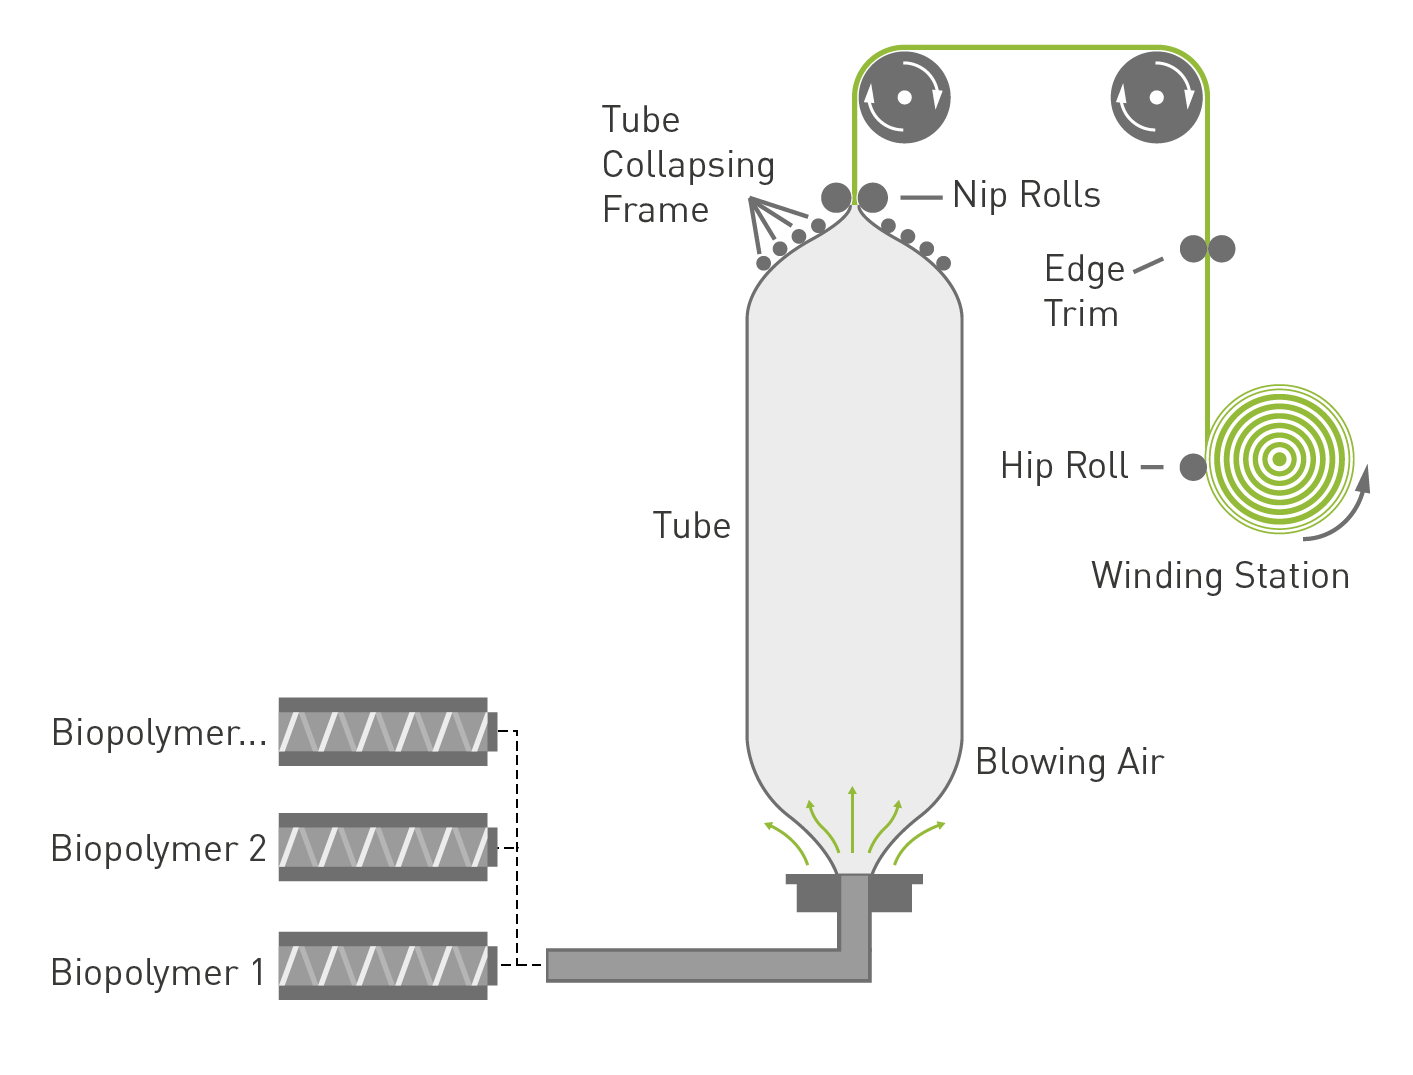 Blow Film Extrusion Process